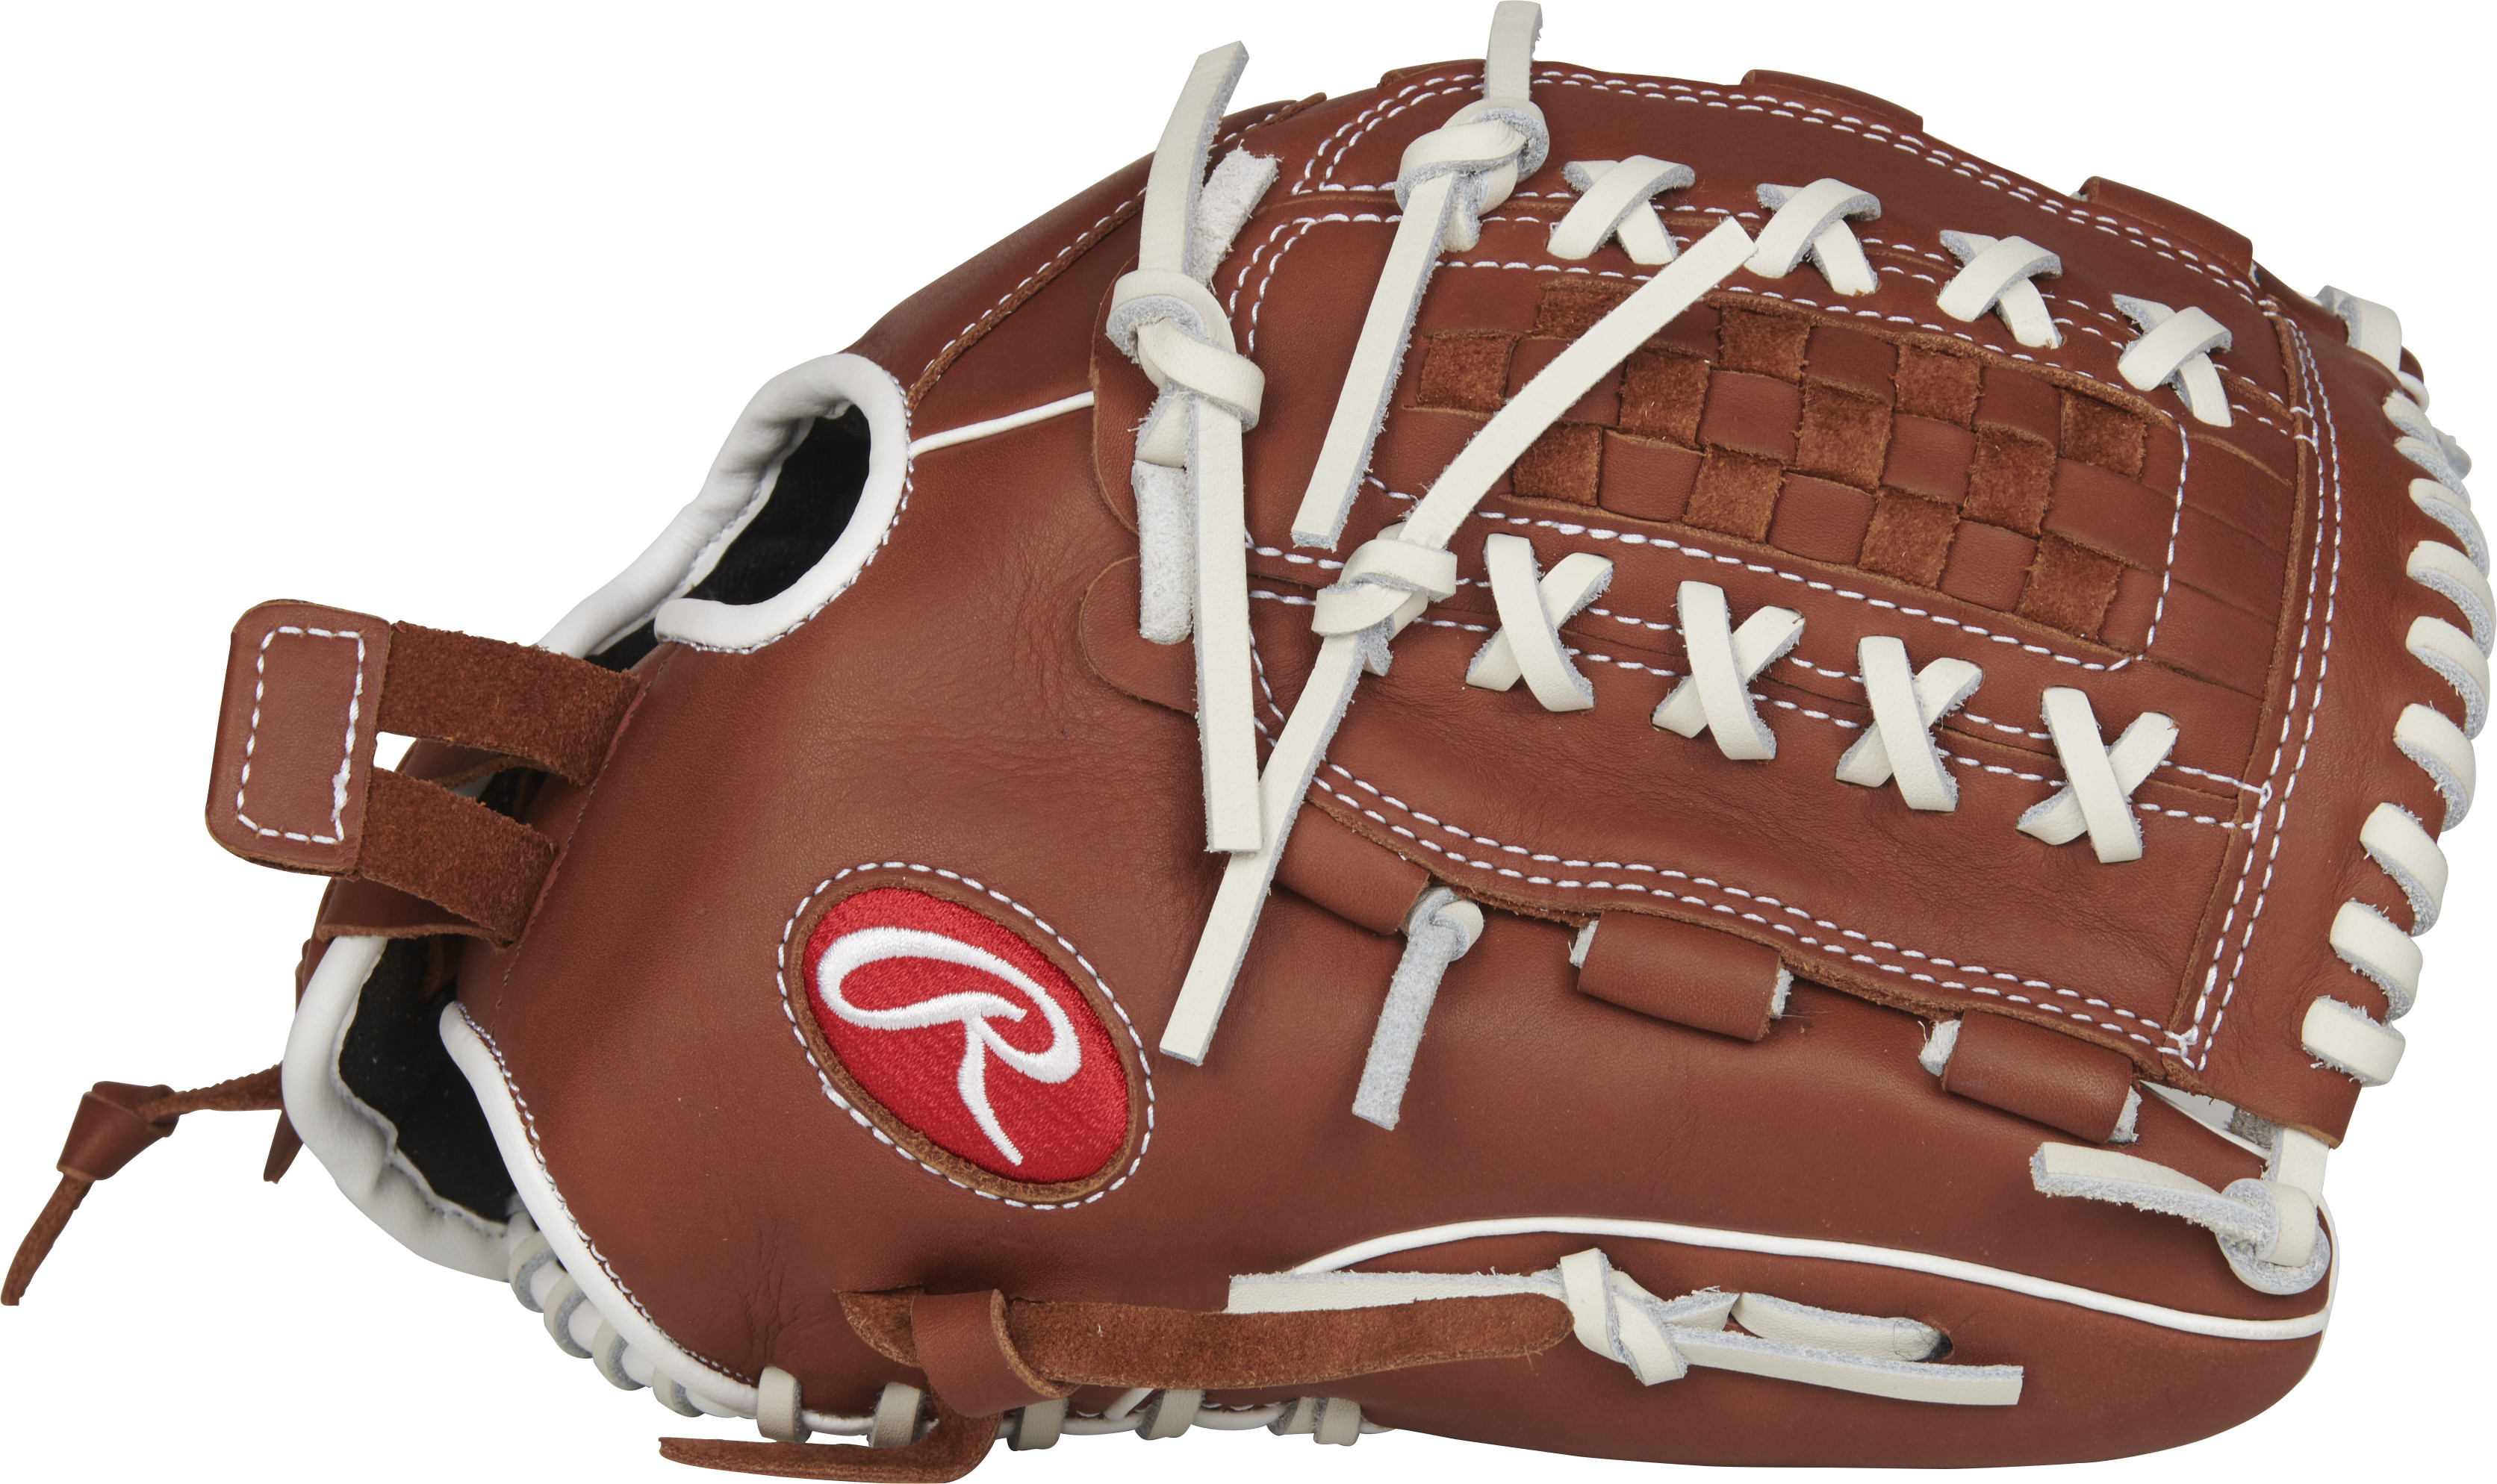 http://www.bestbatdeals.com/images/gloves/rawlings/R9SB125-18DB-3.jpg